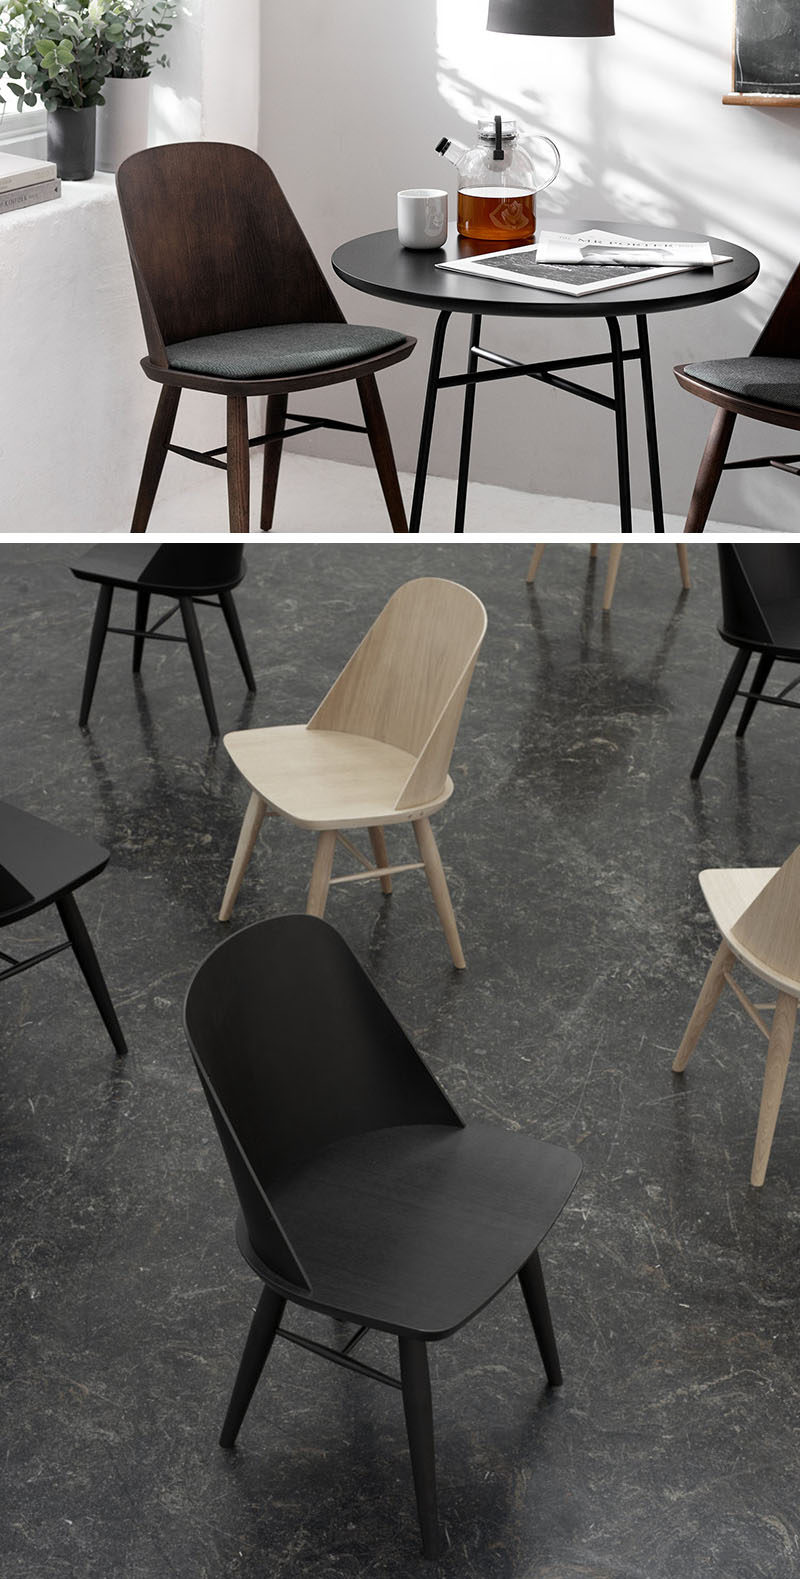 Furniture Ideas   14 Modern Wood Chairs For Your Dining Room // The Curved  Backrest